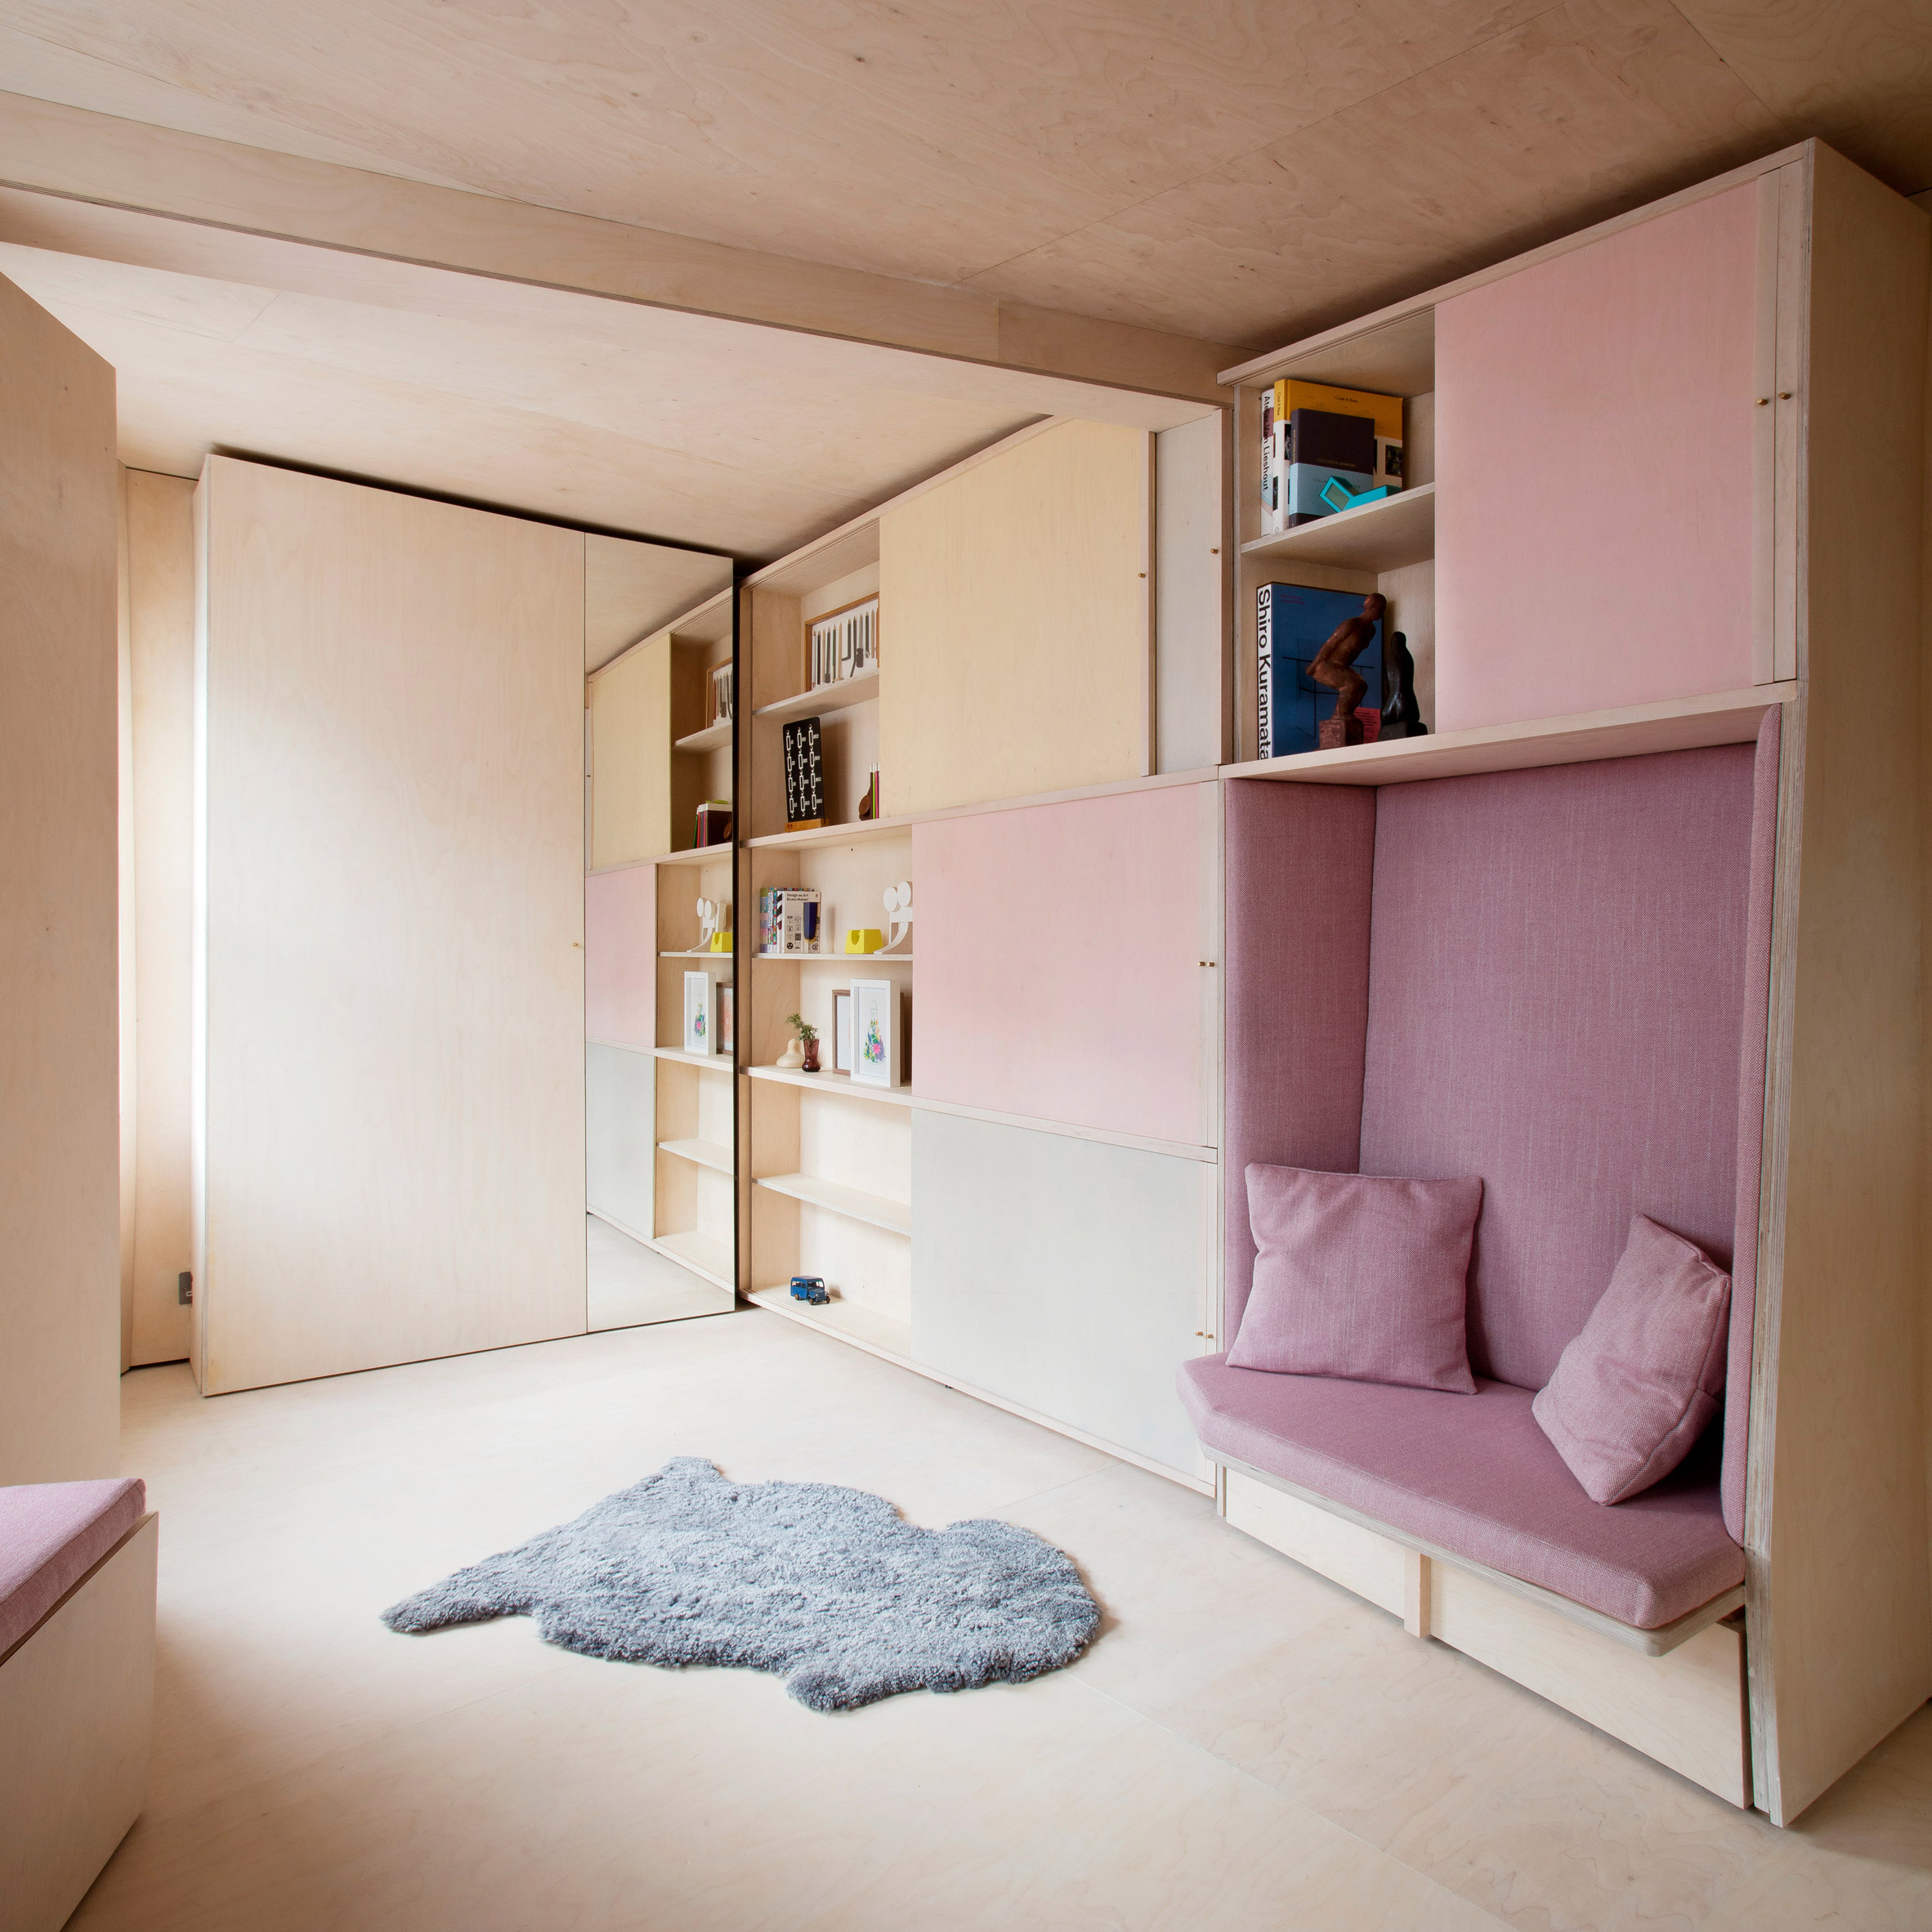 Smallest House In The World 2015 Inside micro homes design and architecture | dezeen